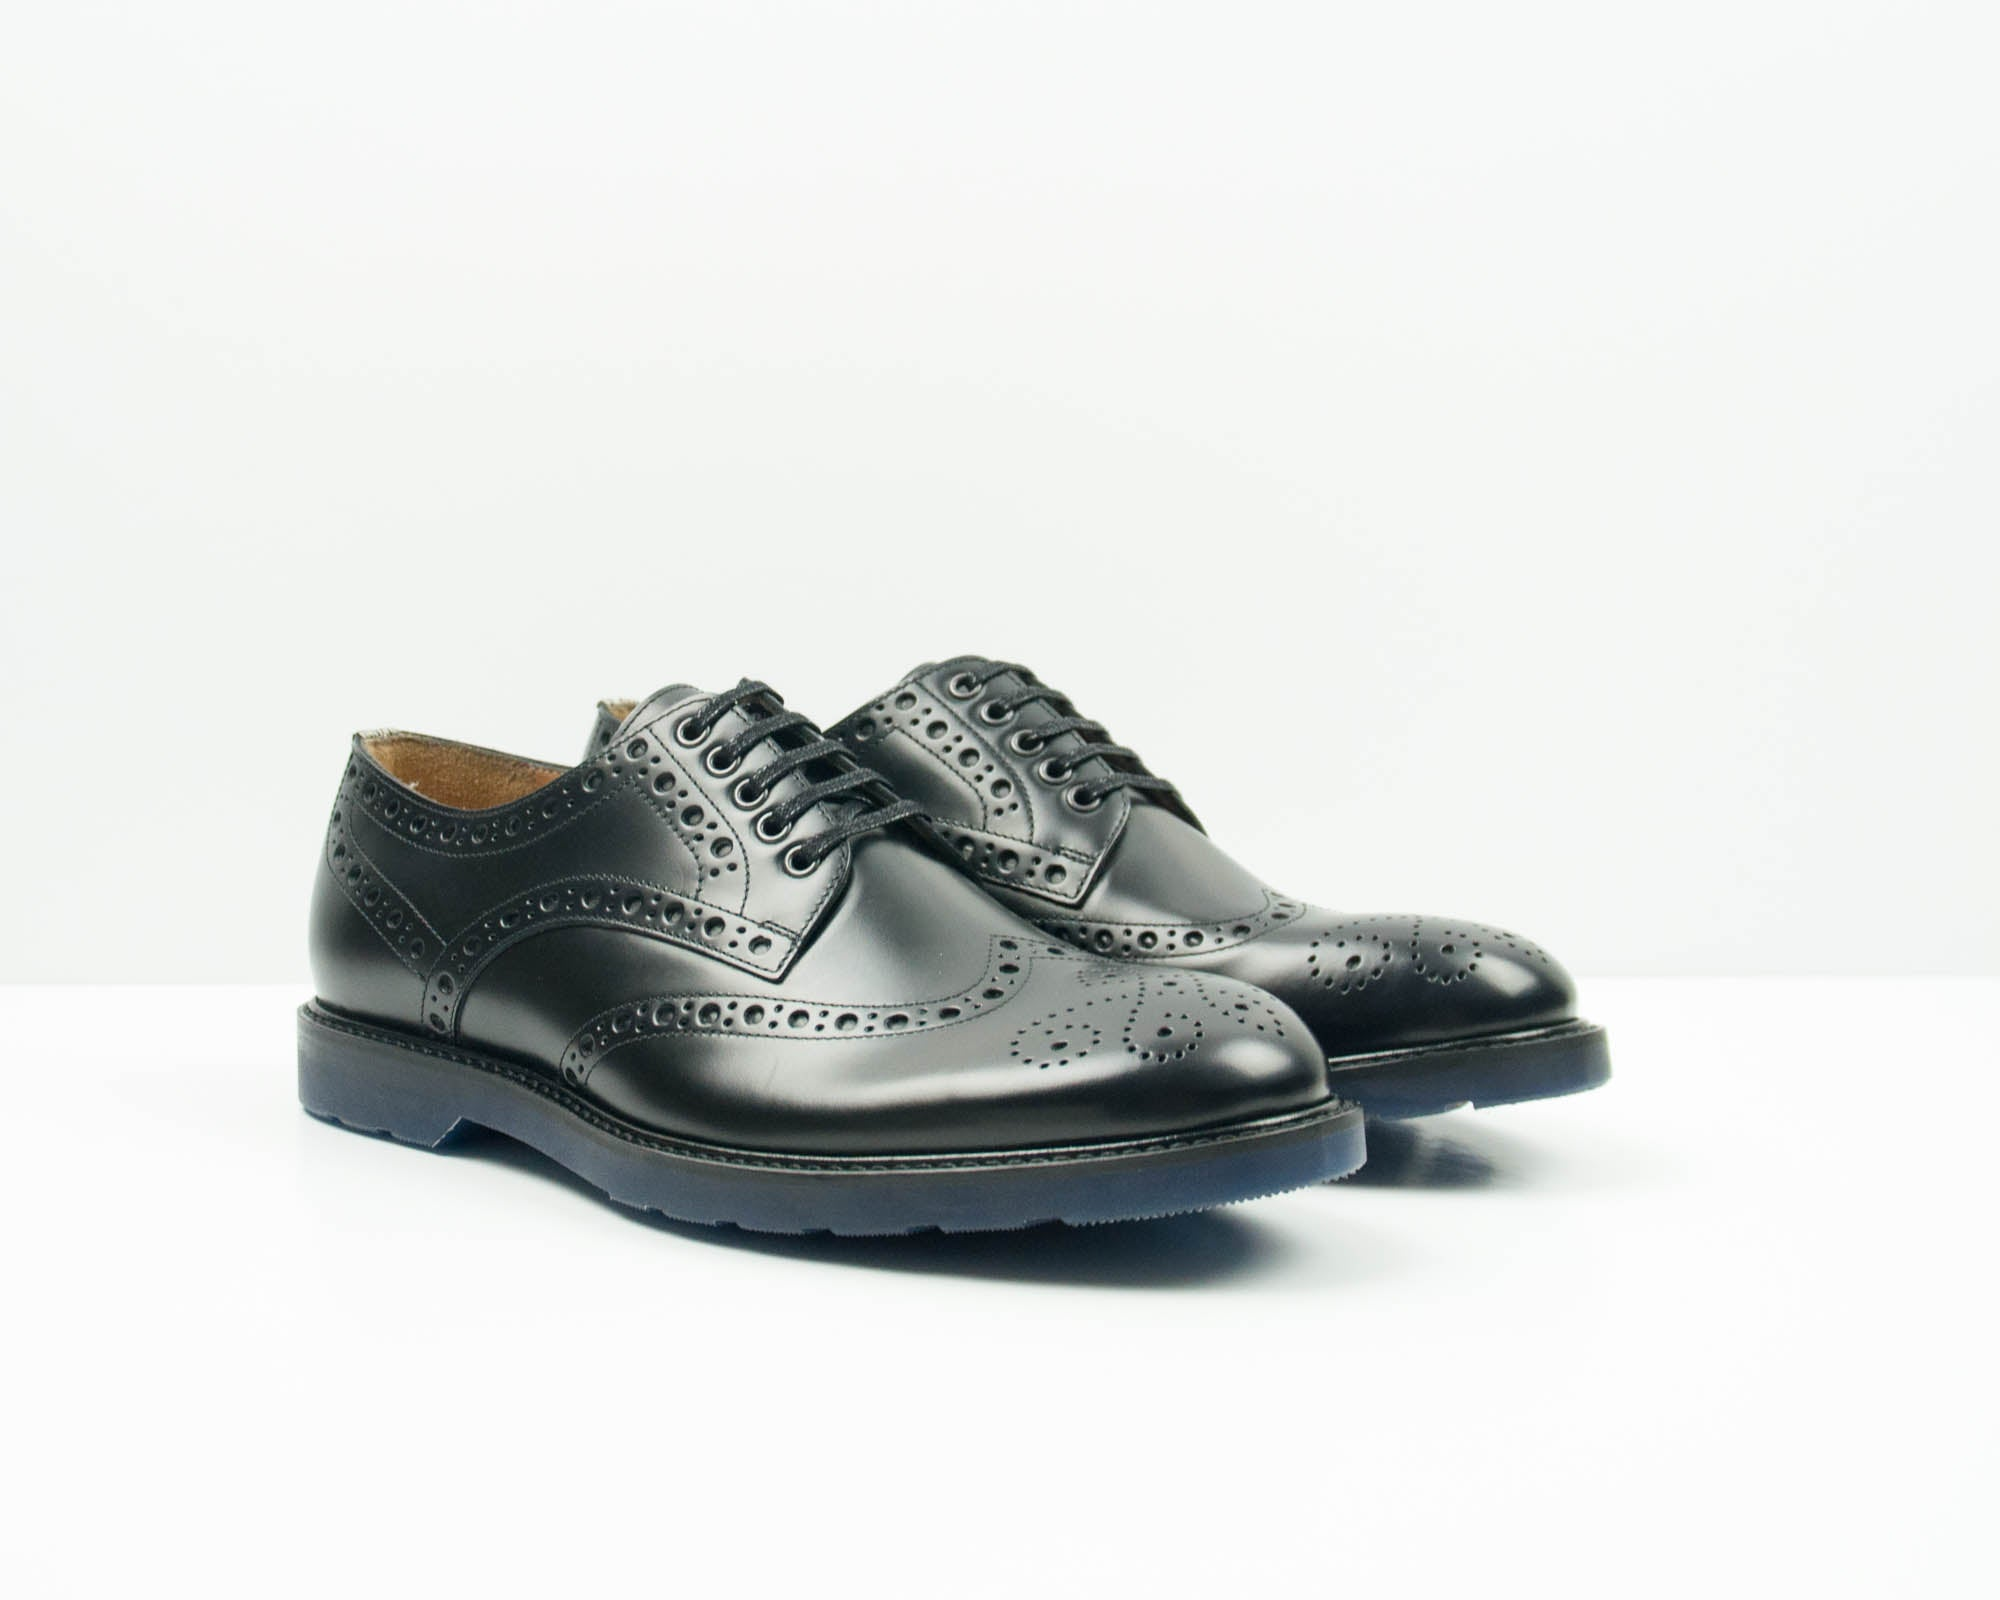 Zapato vestir chico negro - Paul Smith snxdp170